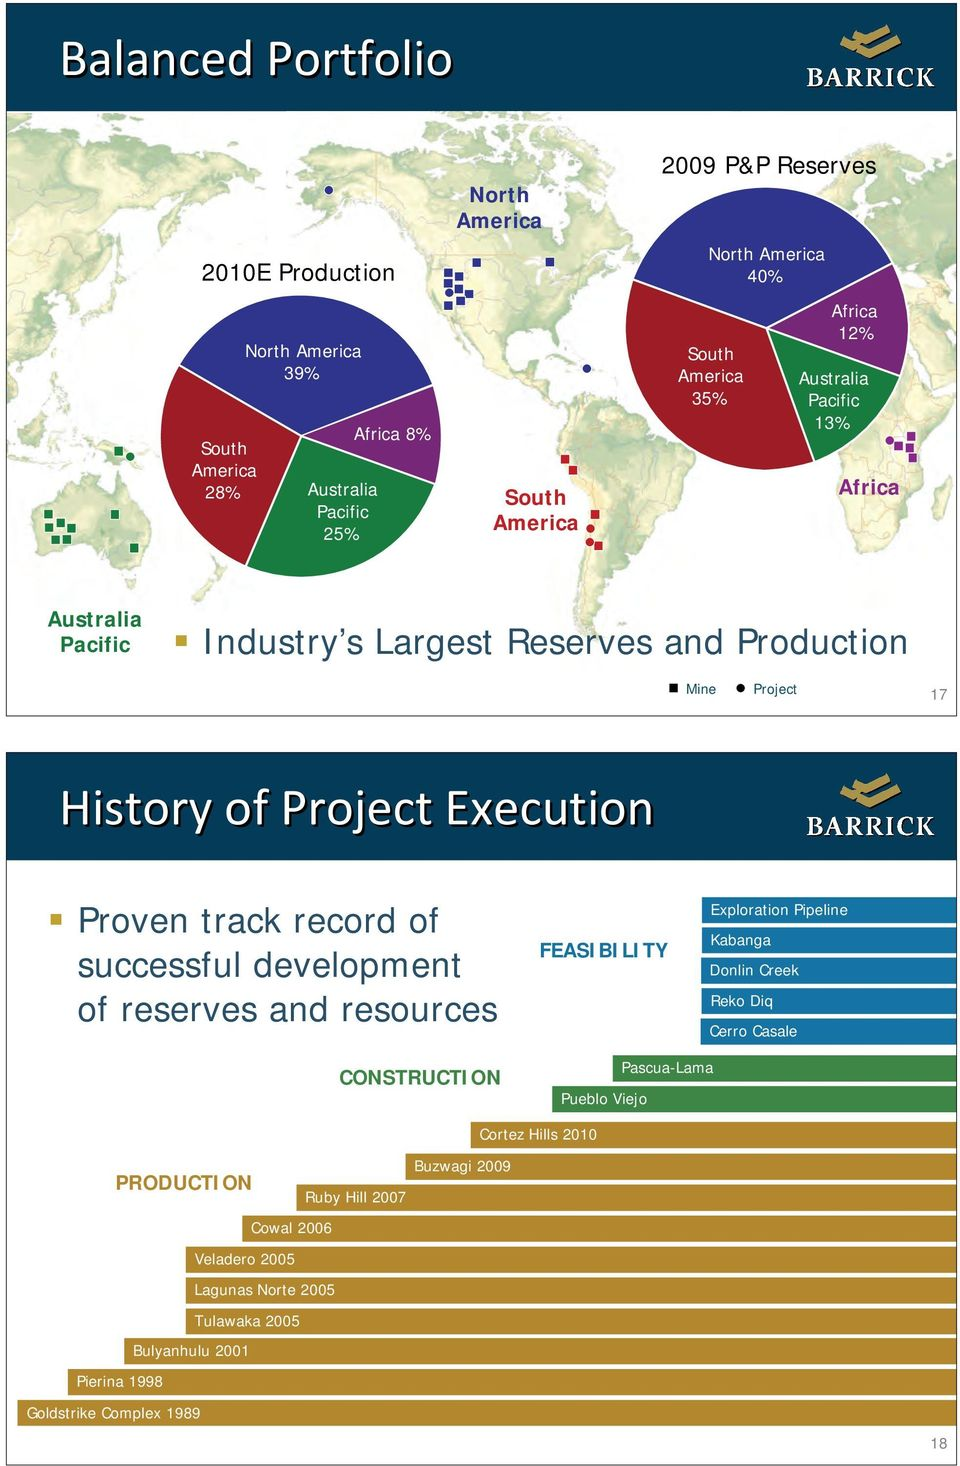 track record of successful development of reserves and resources FEASIBILITY Exploration Pipeline Kabanga Donlin Creek Reko Diq Cerro Casale CONSTRUCTION Pueblo Viejo